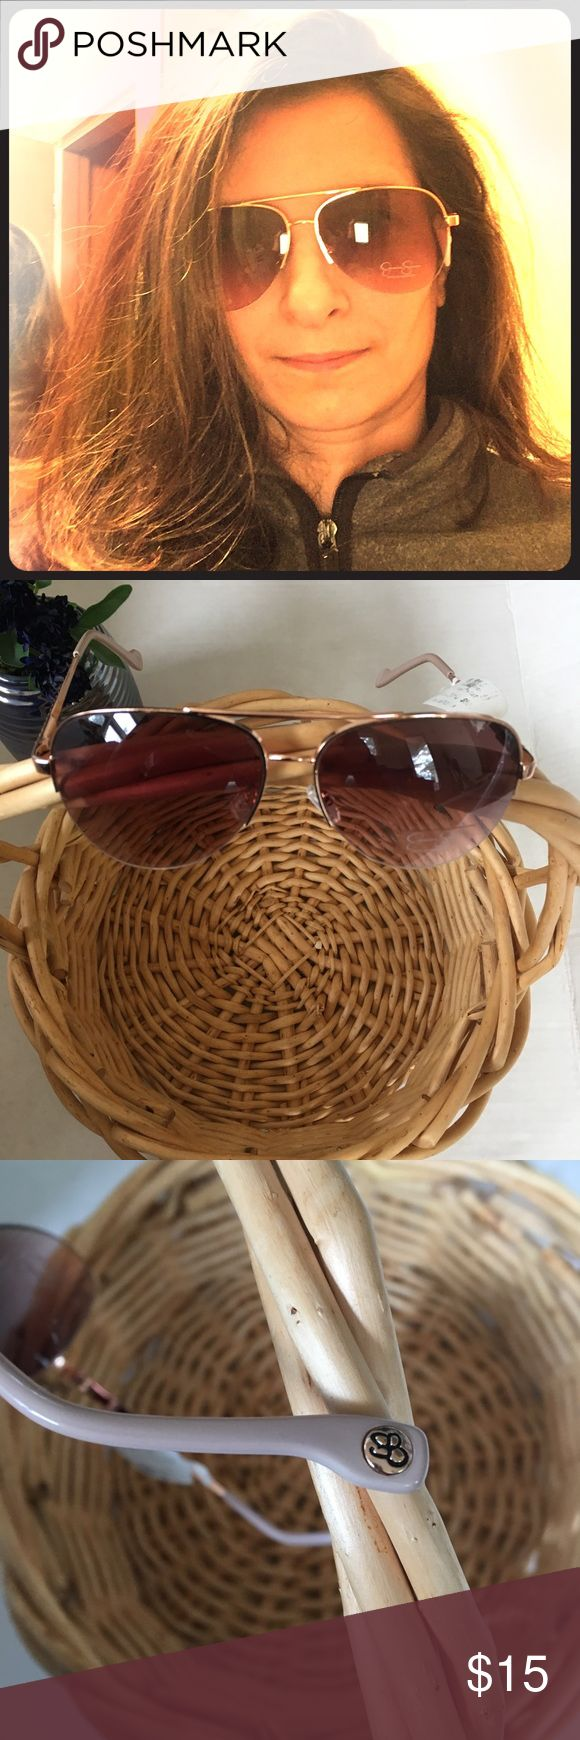 🌞NEW Jessica Simpson Aviator Sunglasses New with tag. Aviator style Jessica Simpson sunglasses. PLEASE NOTE: minor scratches on front lense as seen in last photo.   🛍BUNDLE=SAVE  🚫TRADE  💯Authentic   🖲USE BLUE OFFER BUTTON TO NEGOTIATE   ✔️Ask Questions Not Answered in Description--Want You to Be Happy! Jessica Simpson Accessories Sunglasses